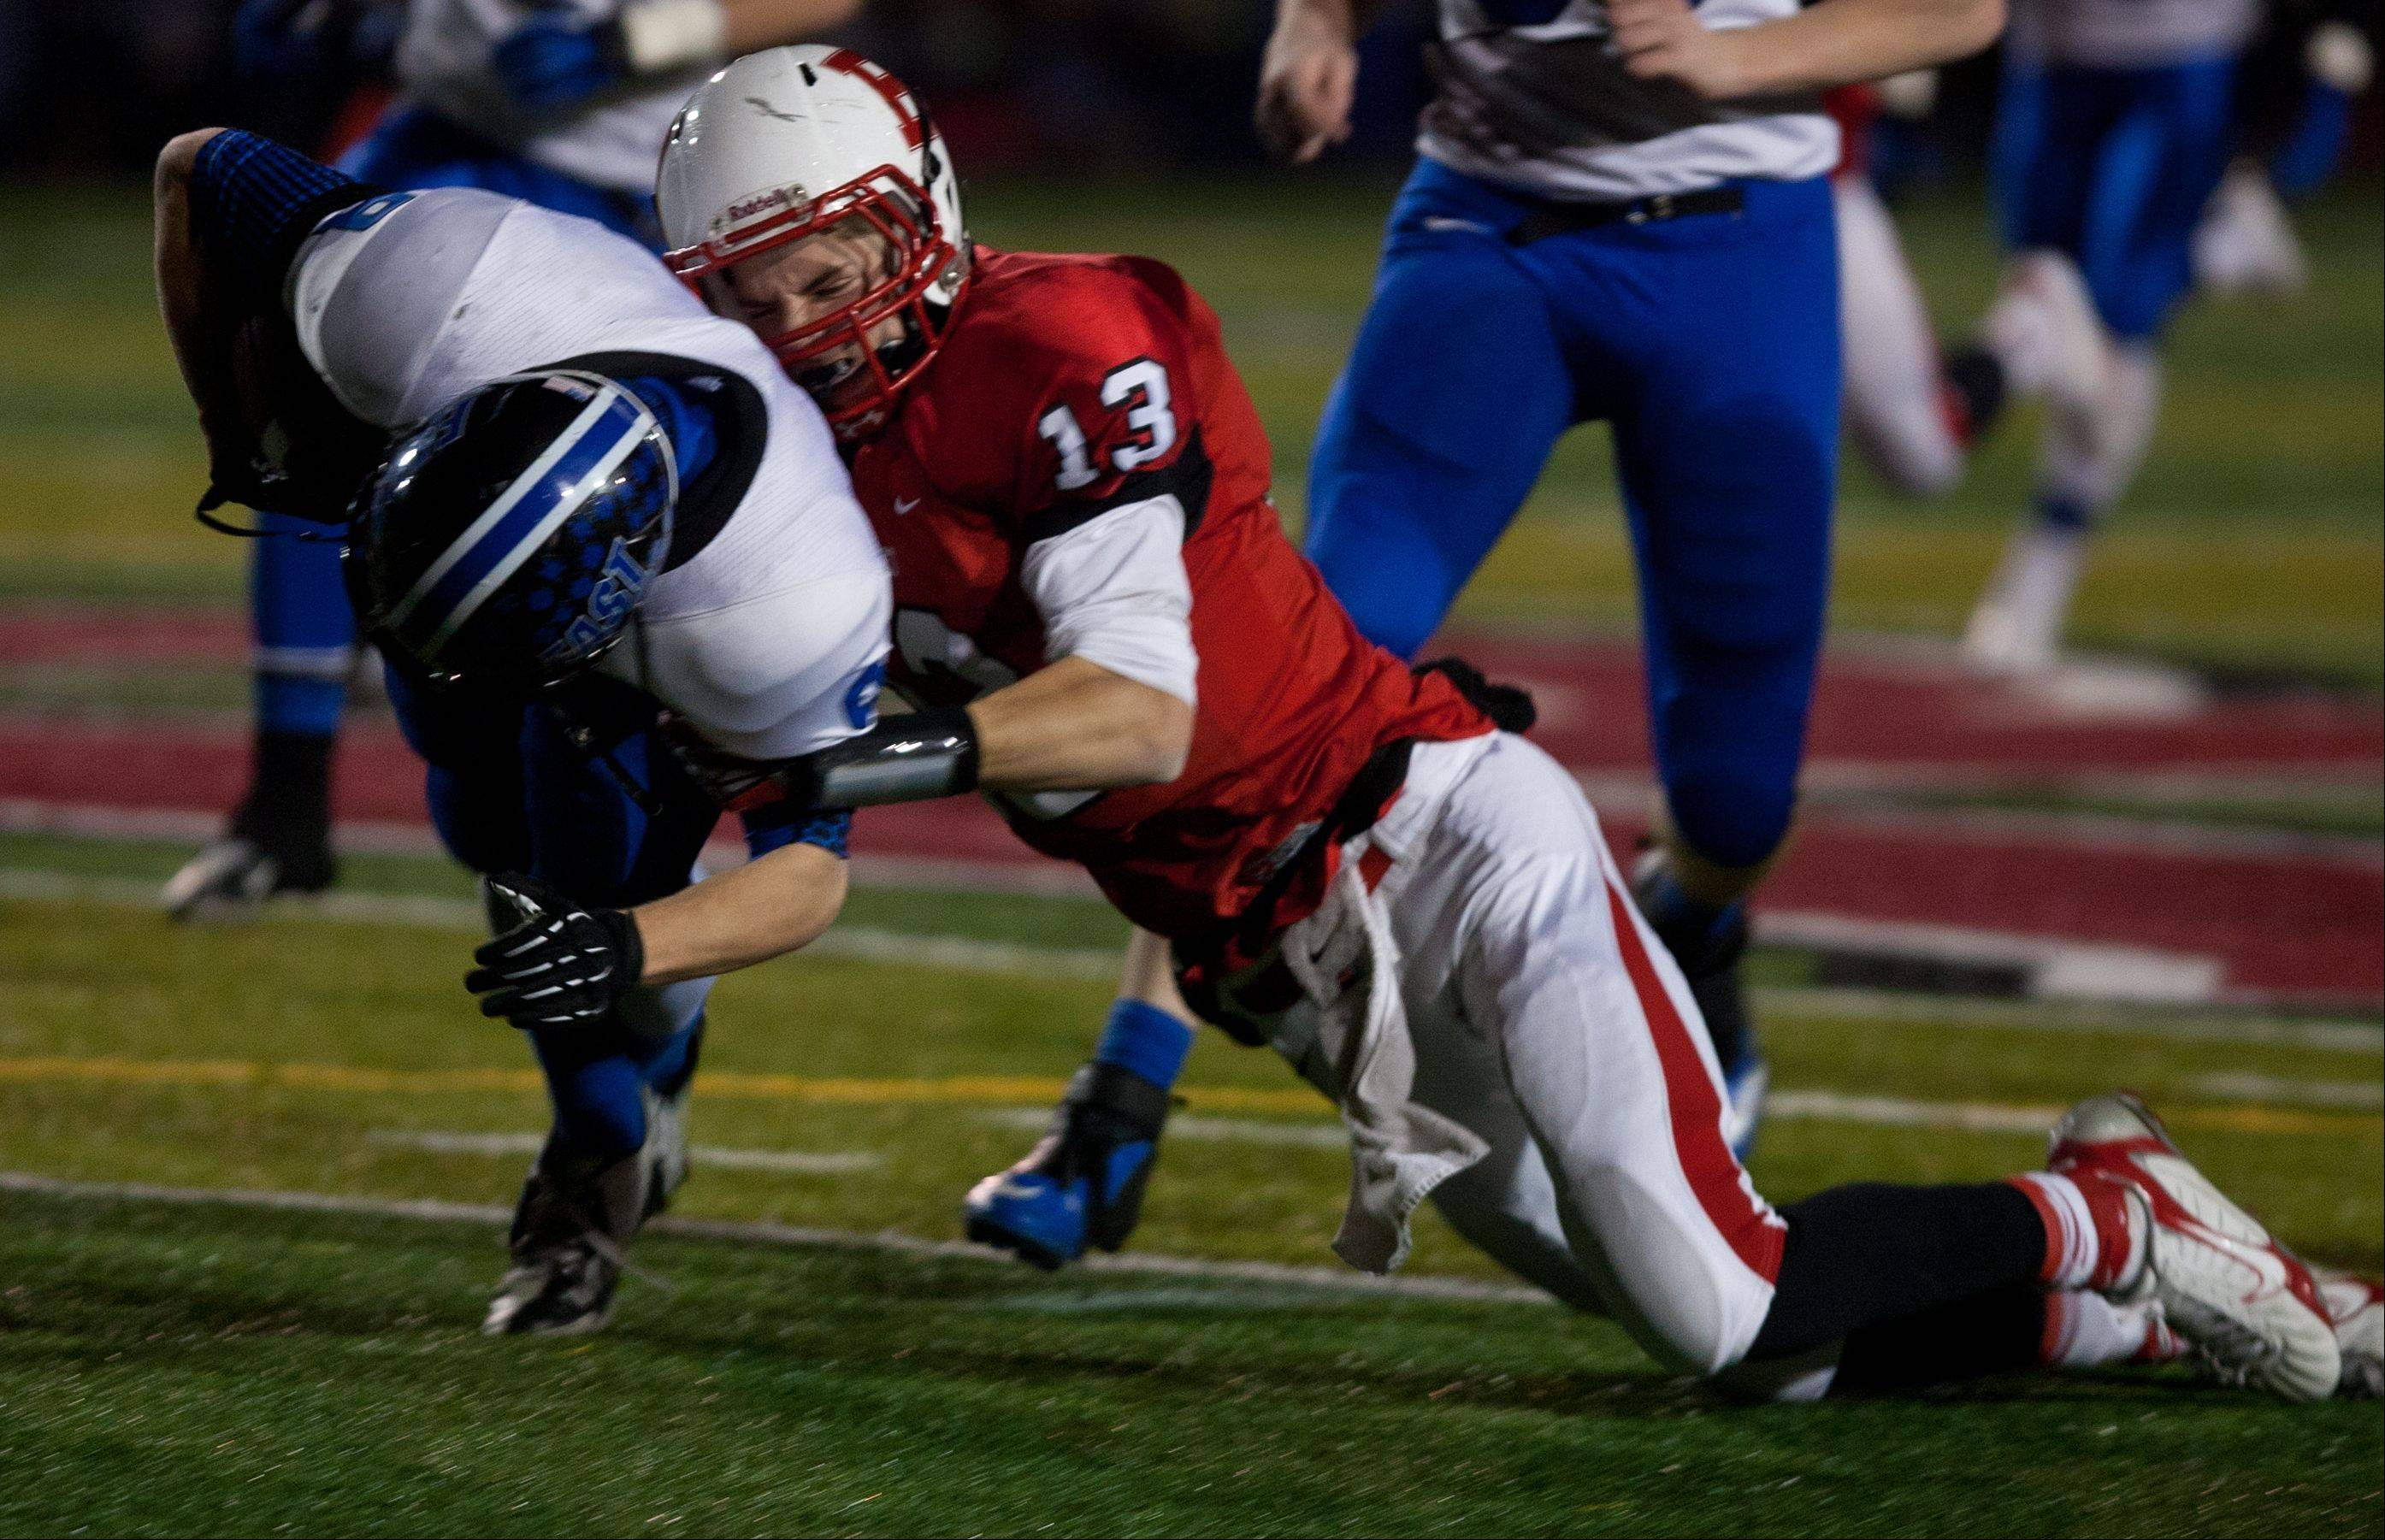 Benet quarterback Jack Beneventi (13) tackles Lincoln-Way East's Jordan Wirtz, who intercepted his pass during Class 7A football semifinals at Benedictine.